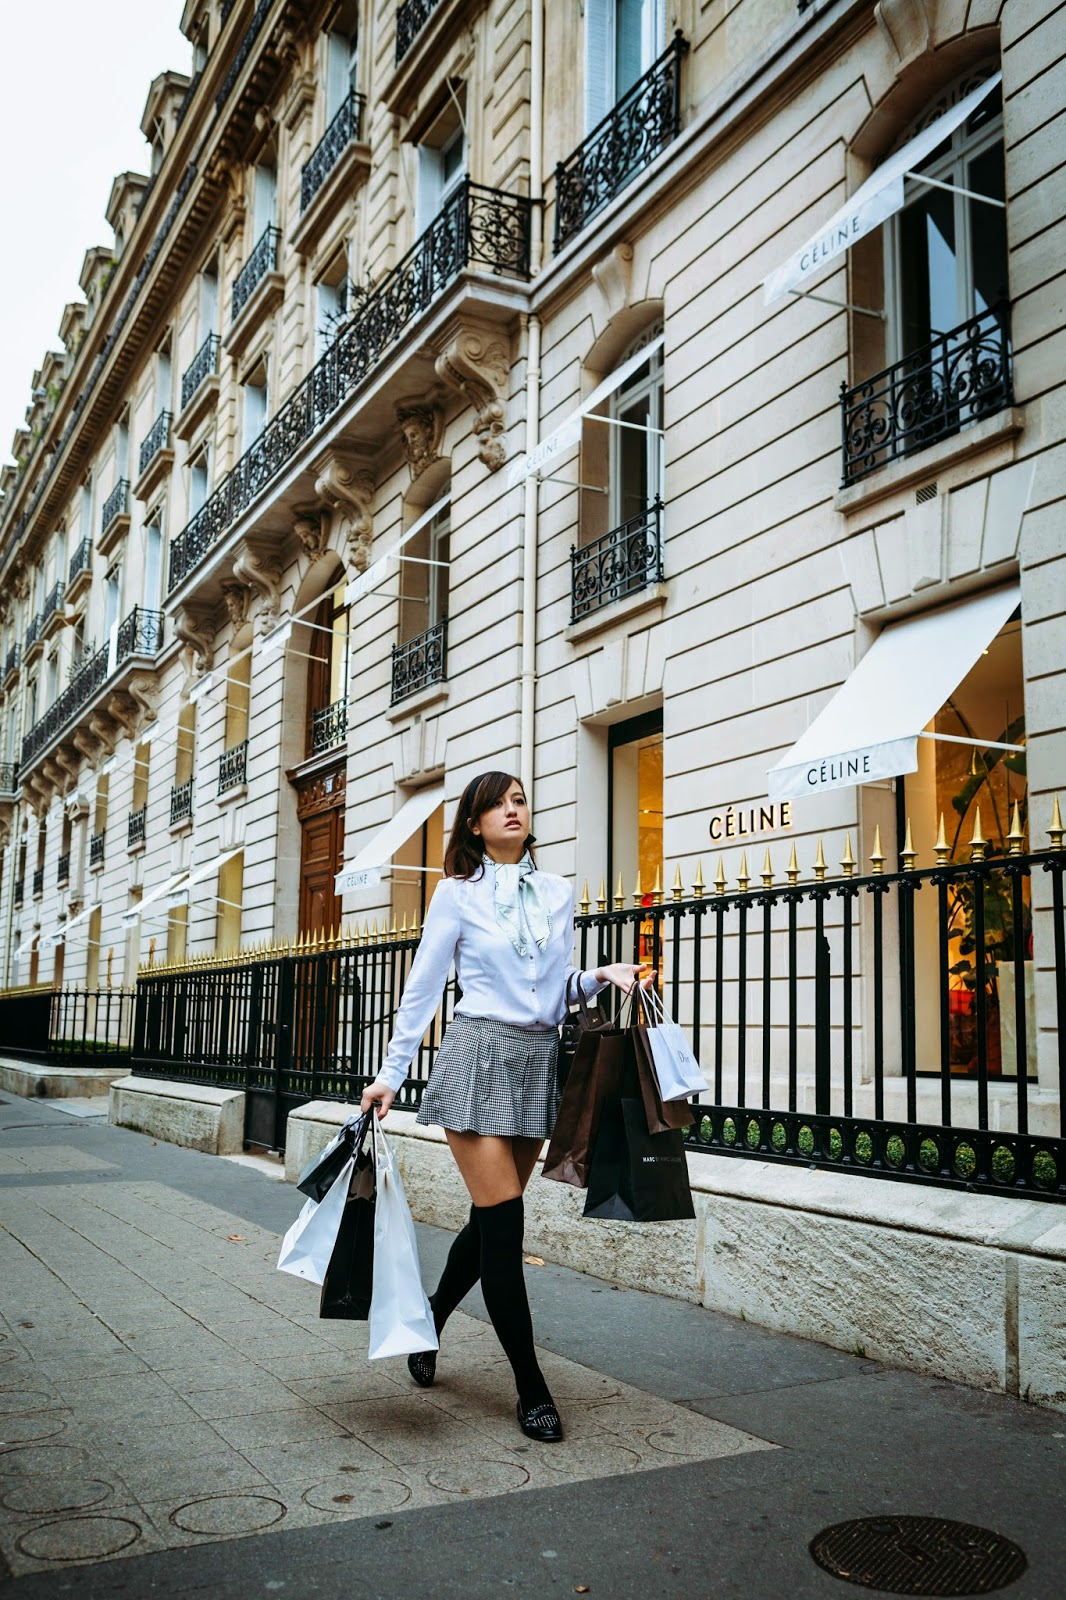 Parisian chic fashion